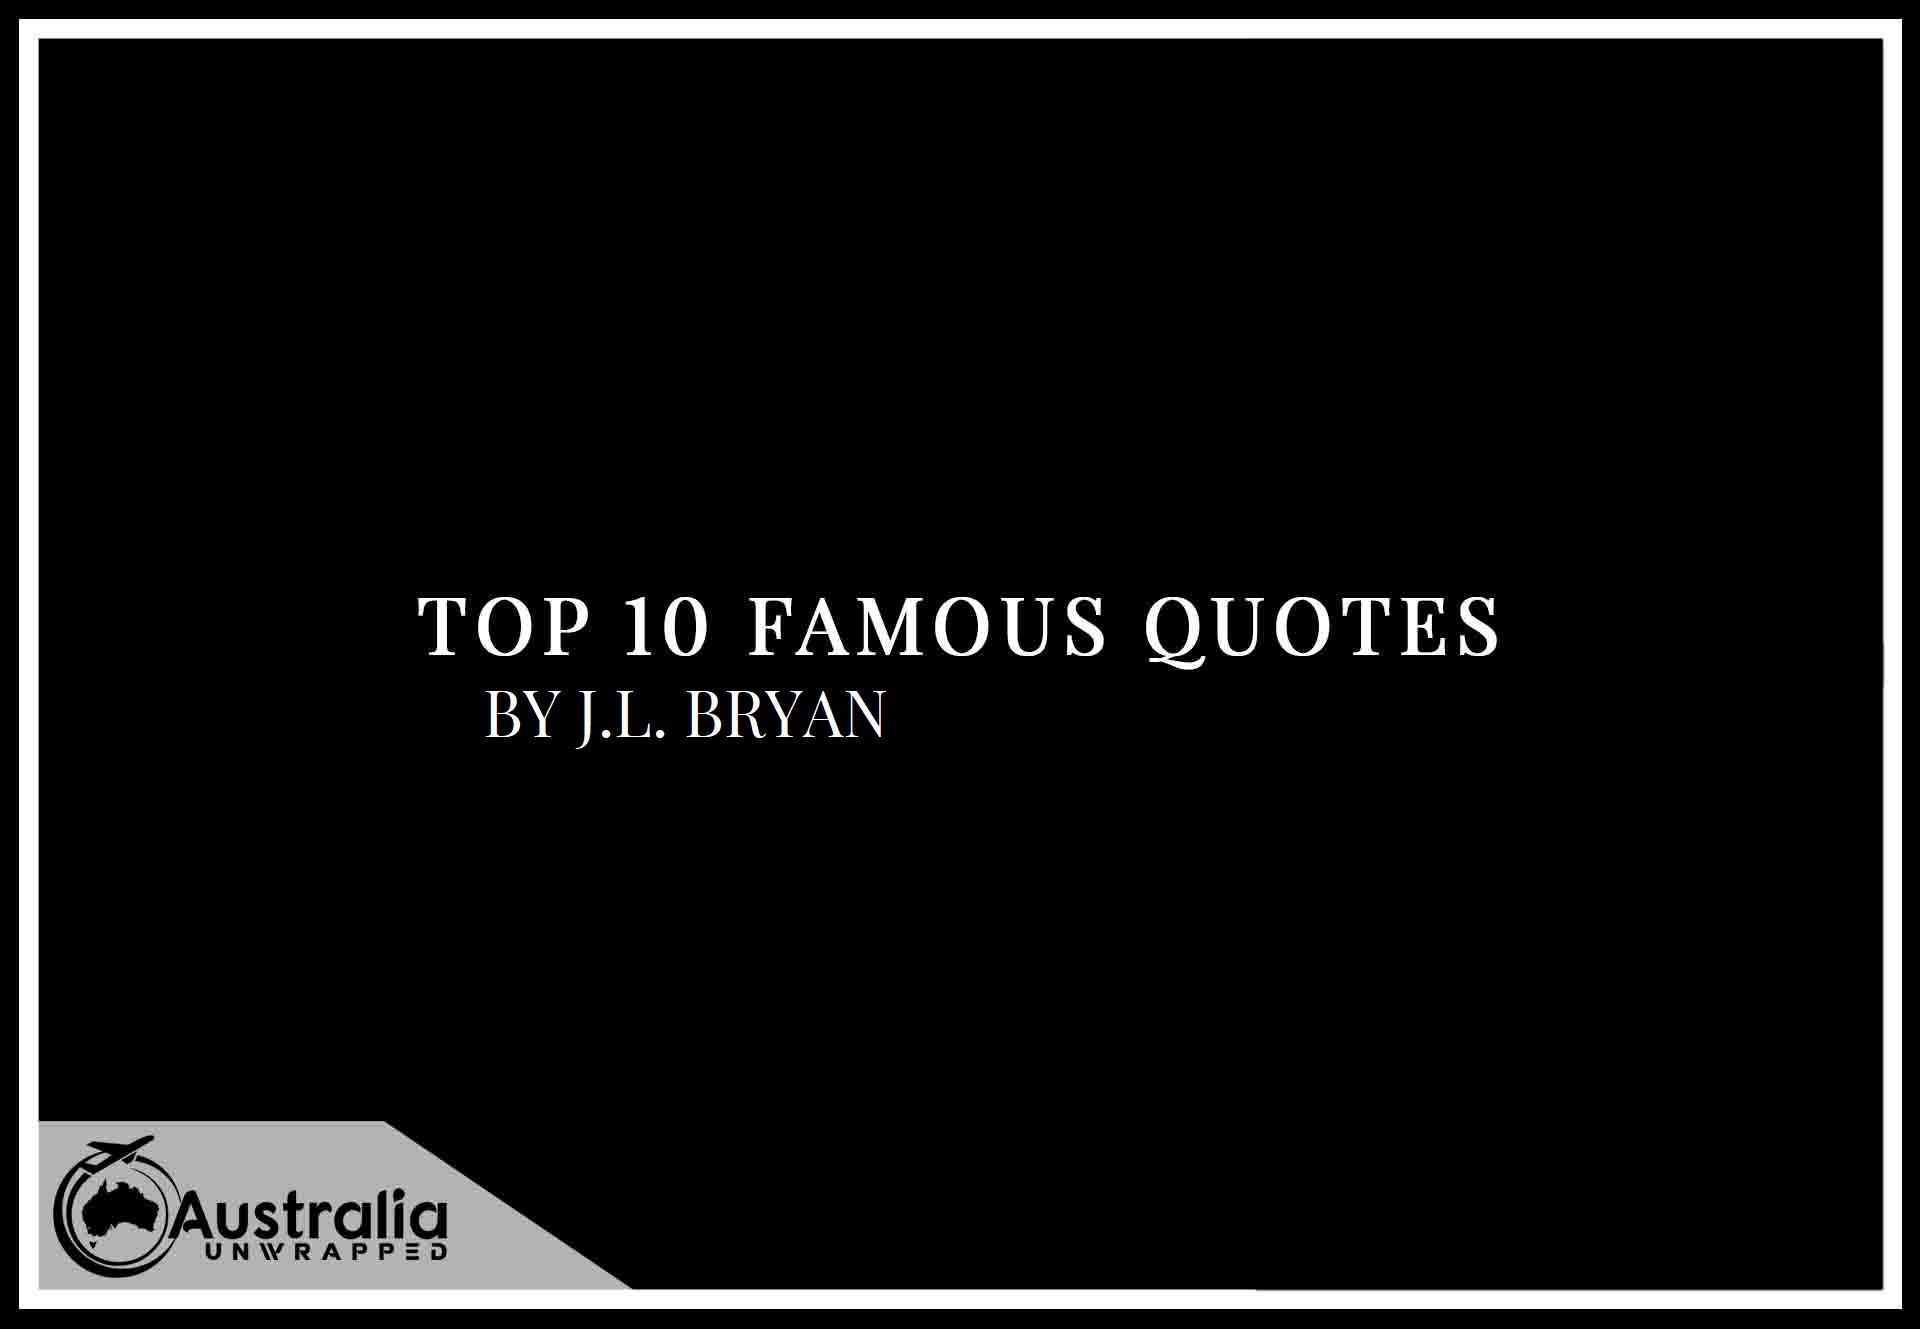 Top 10 Famous Quotes by Author J.L. Bryan